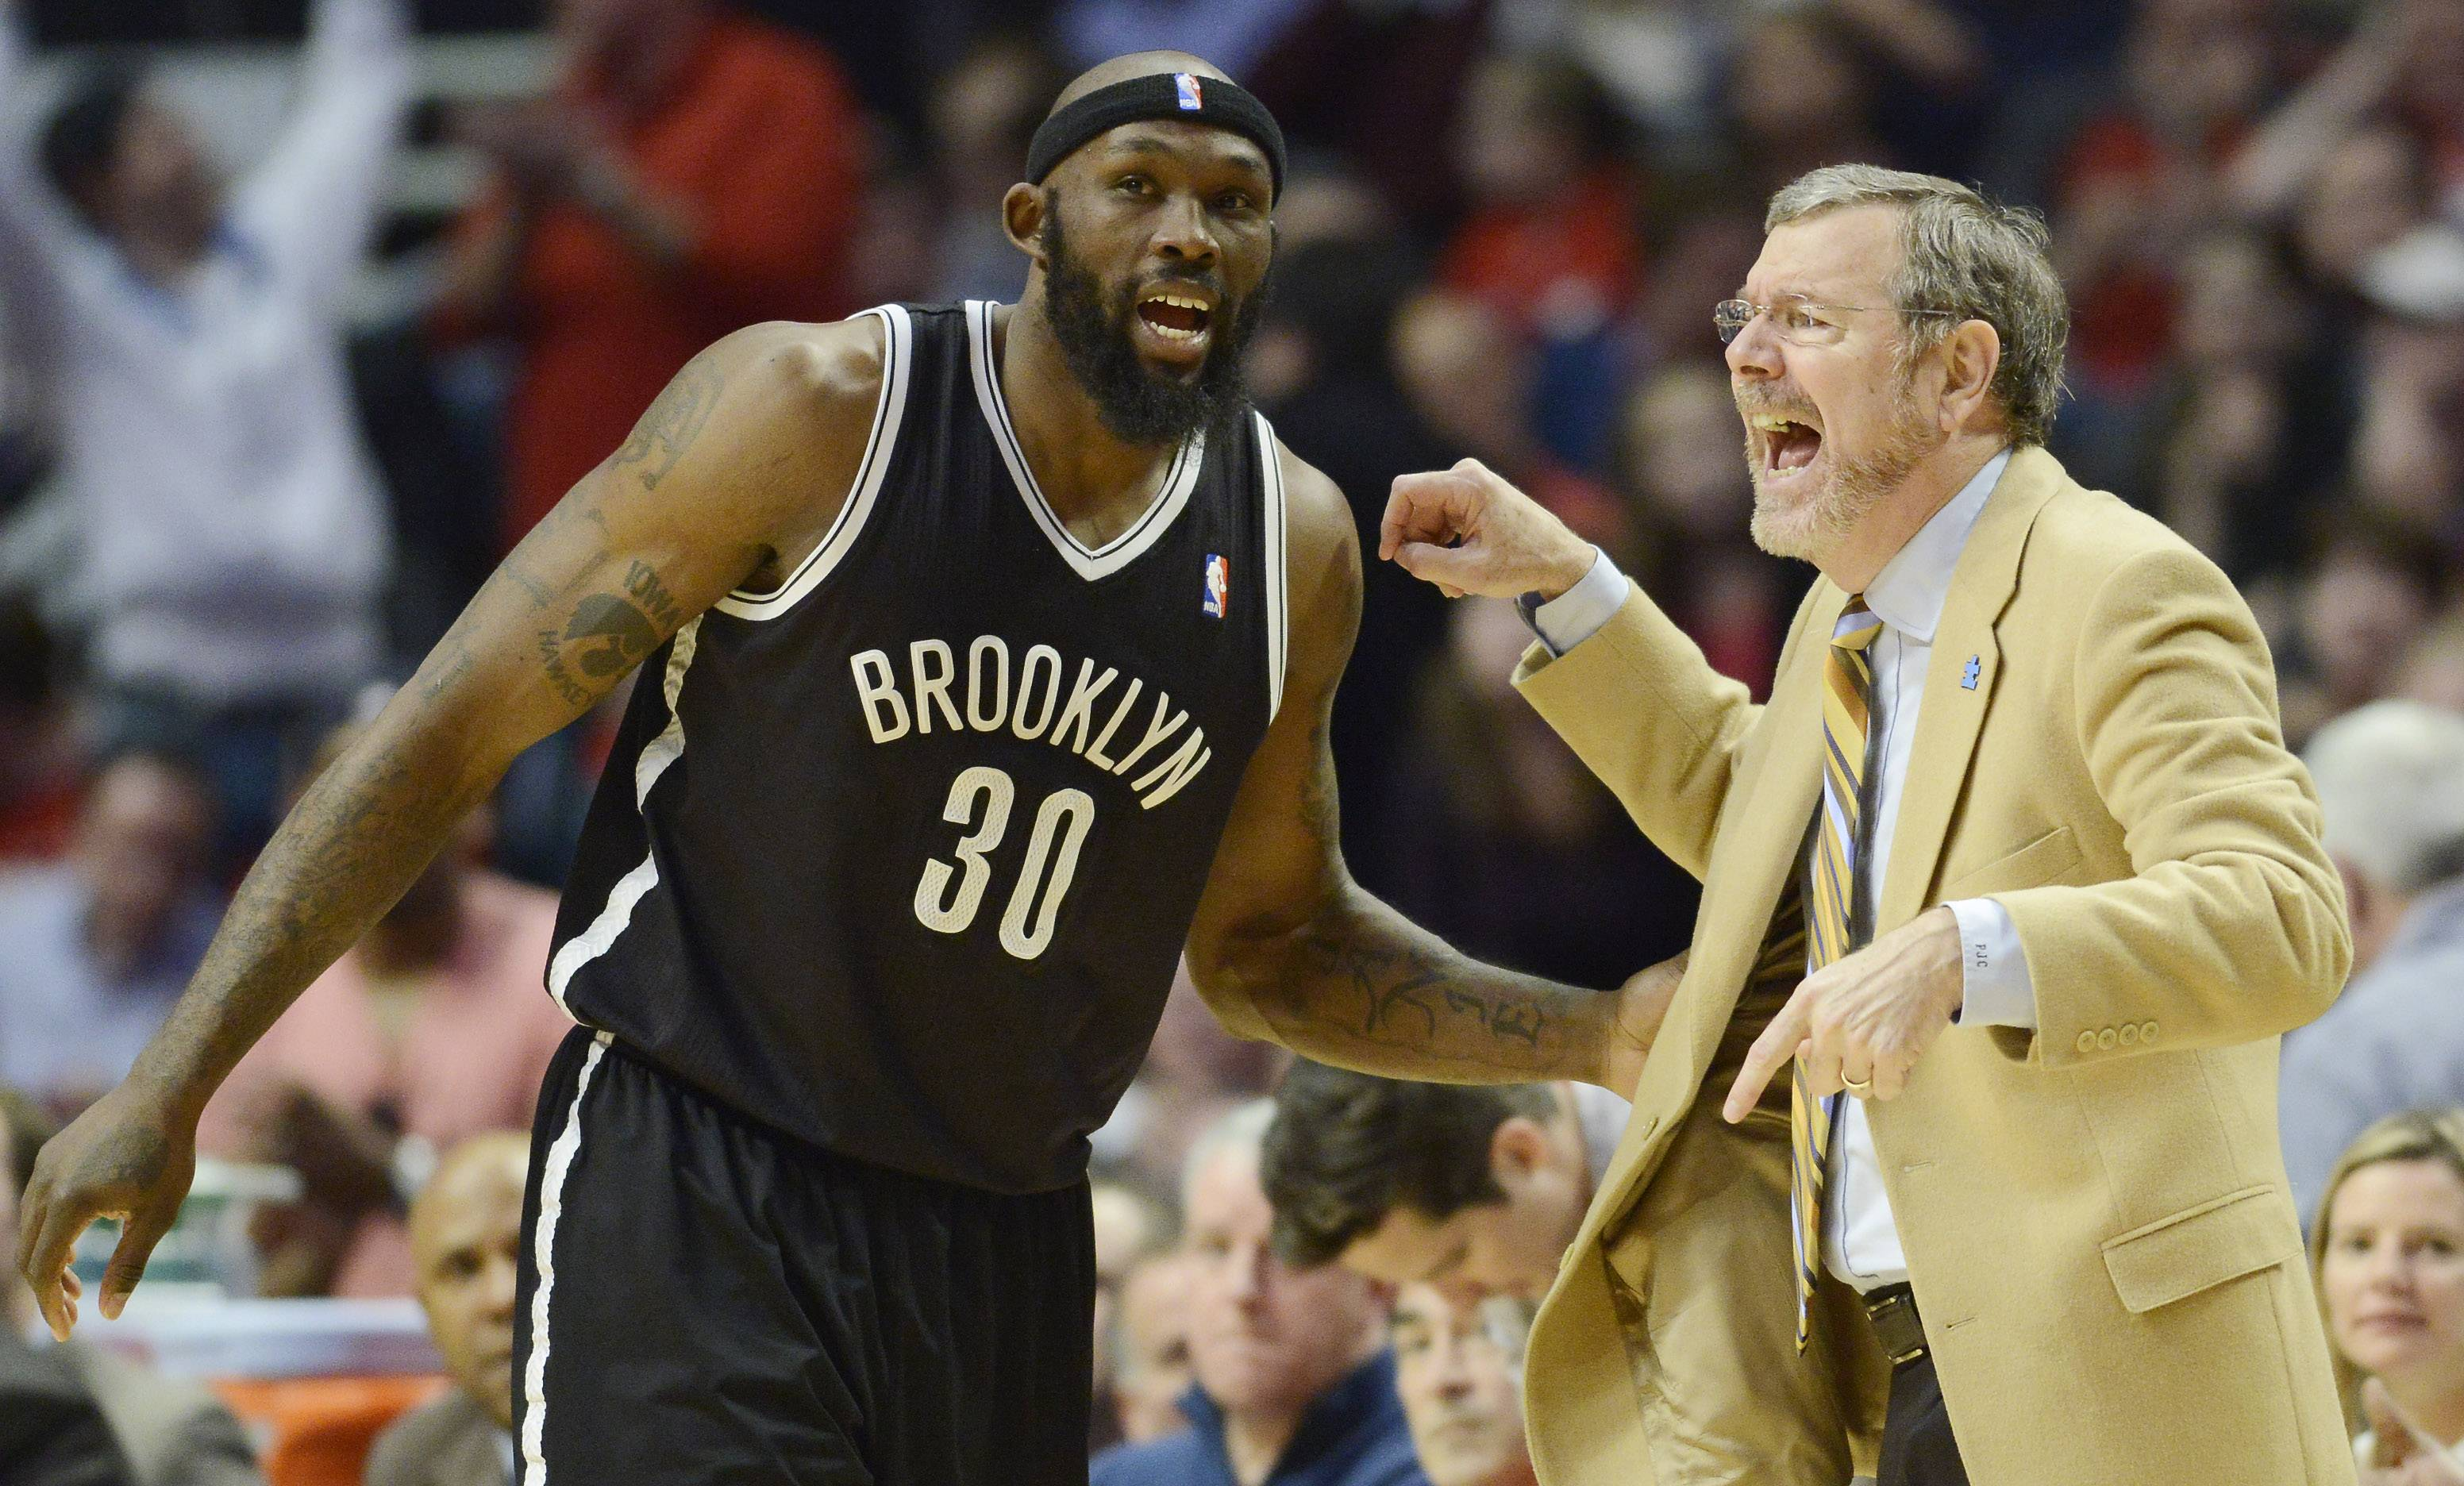 Brooklyn Nets coach P.J. Carlesimo talks with Reggie Evans in Game 6 of the first round playoff game against the Chicago Bulls at the United Center in Chicago, Thursday, May 2, 2013.